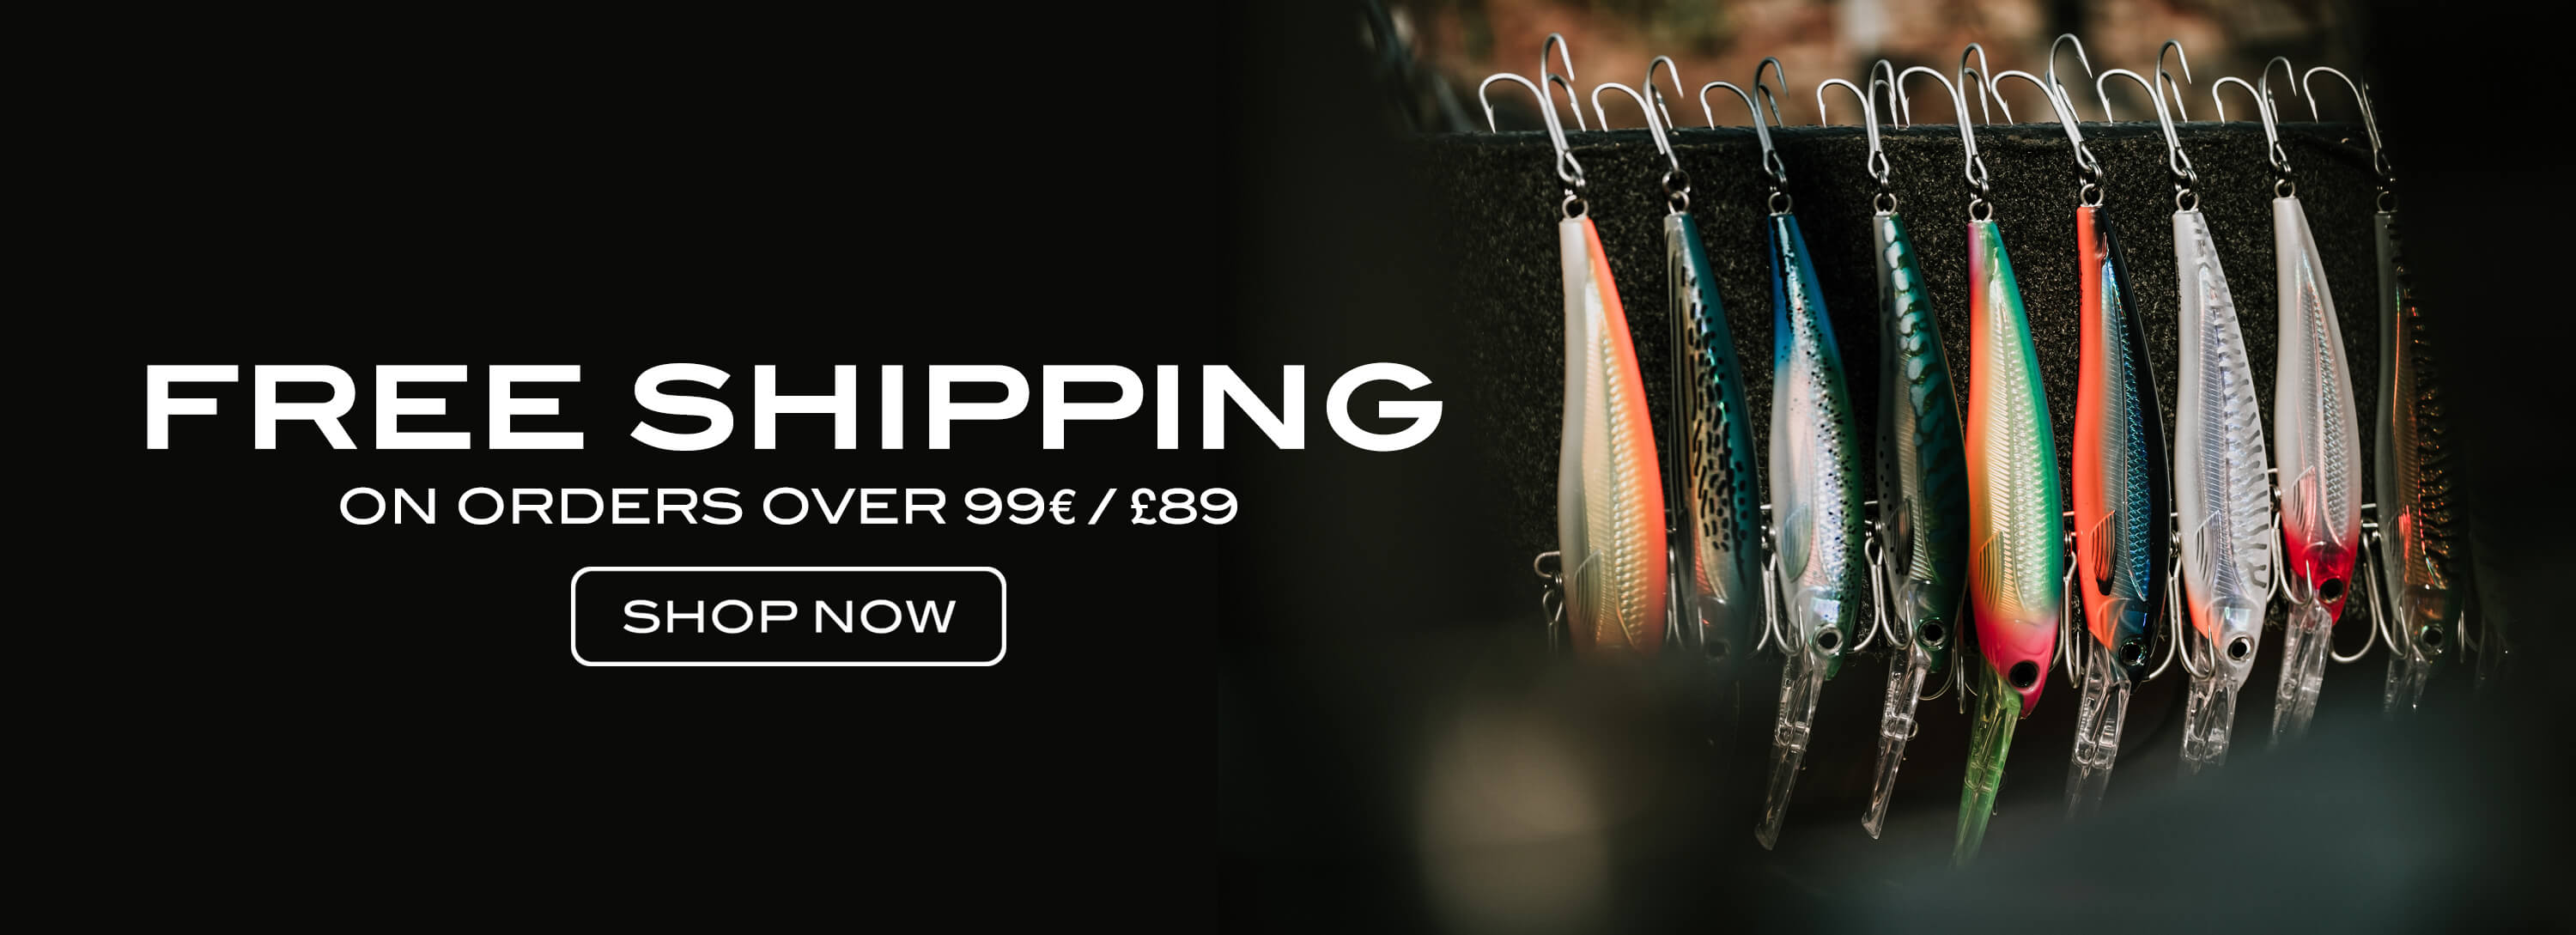 Free Shipping on Orders Over 99EUR/89GBP